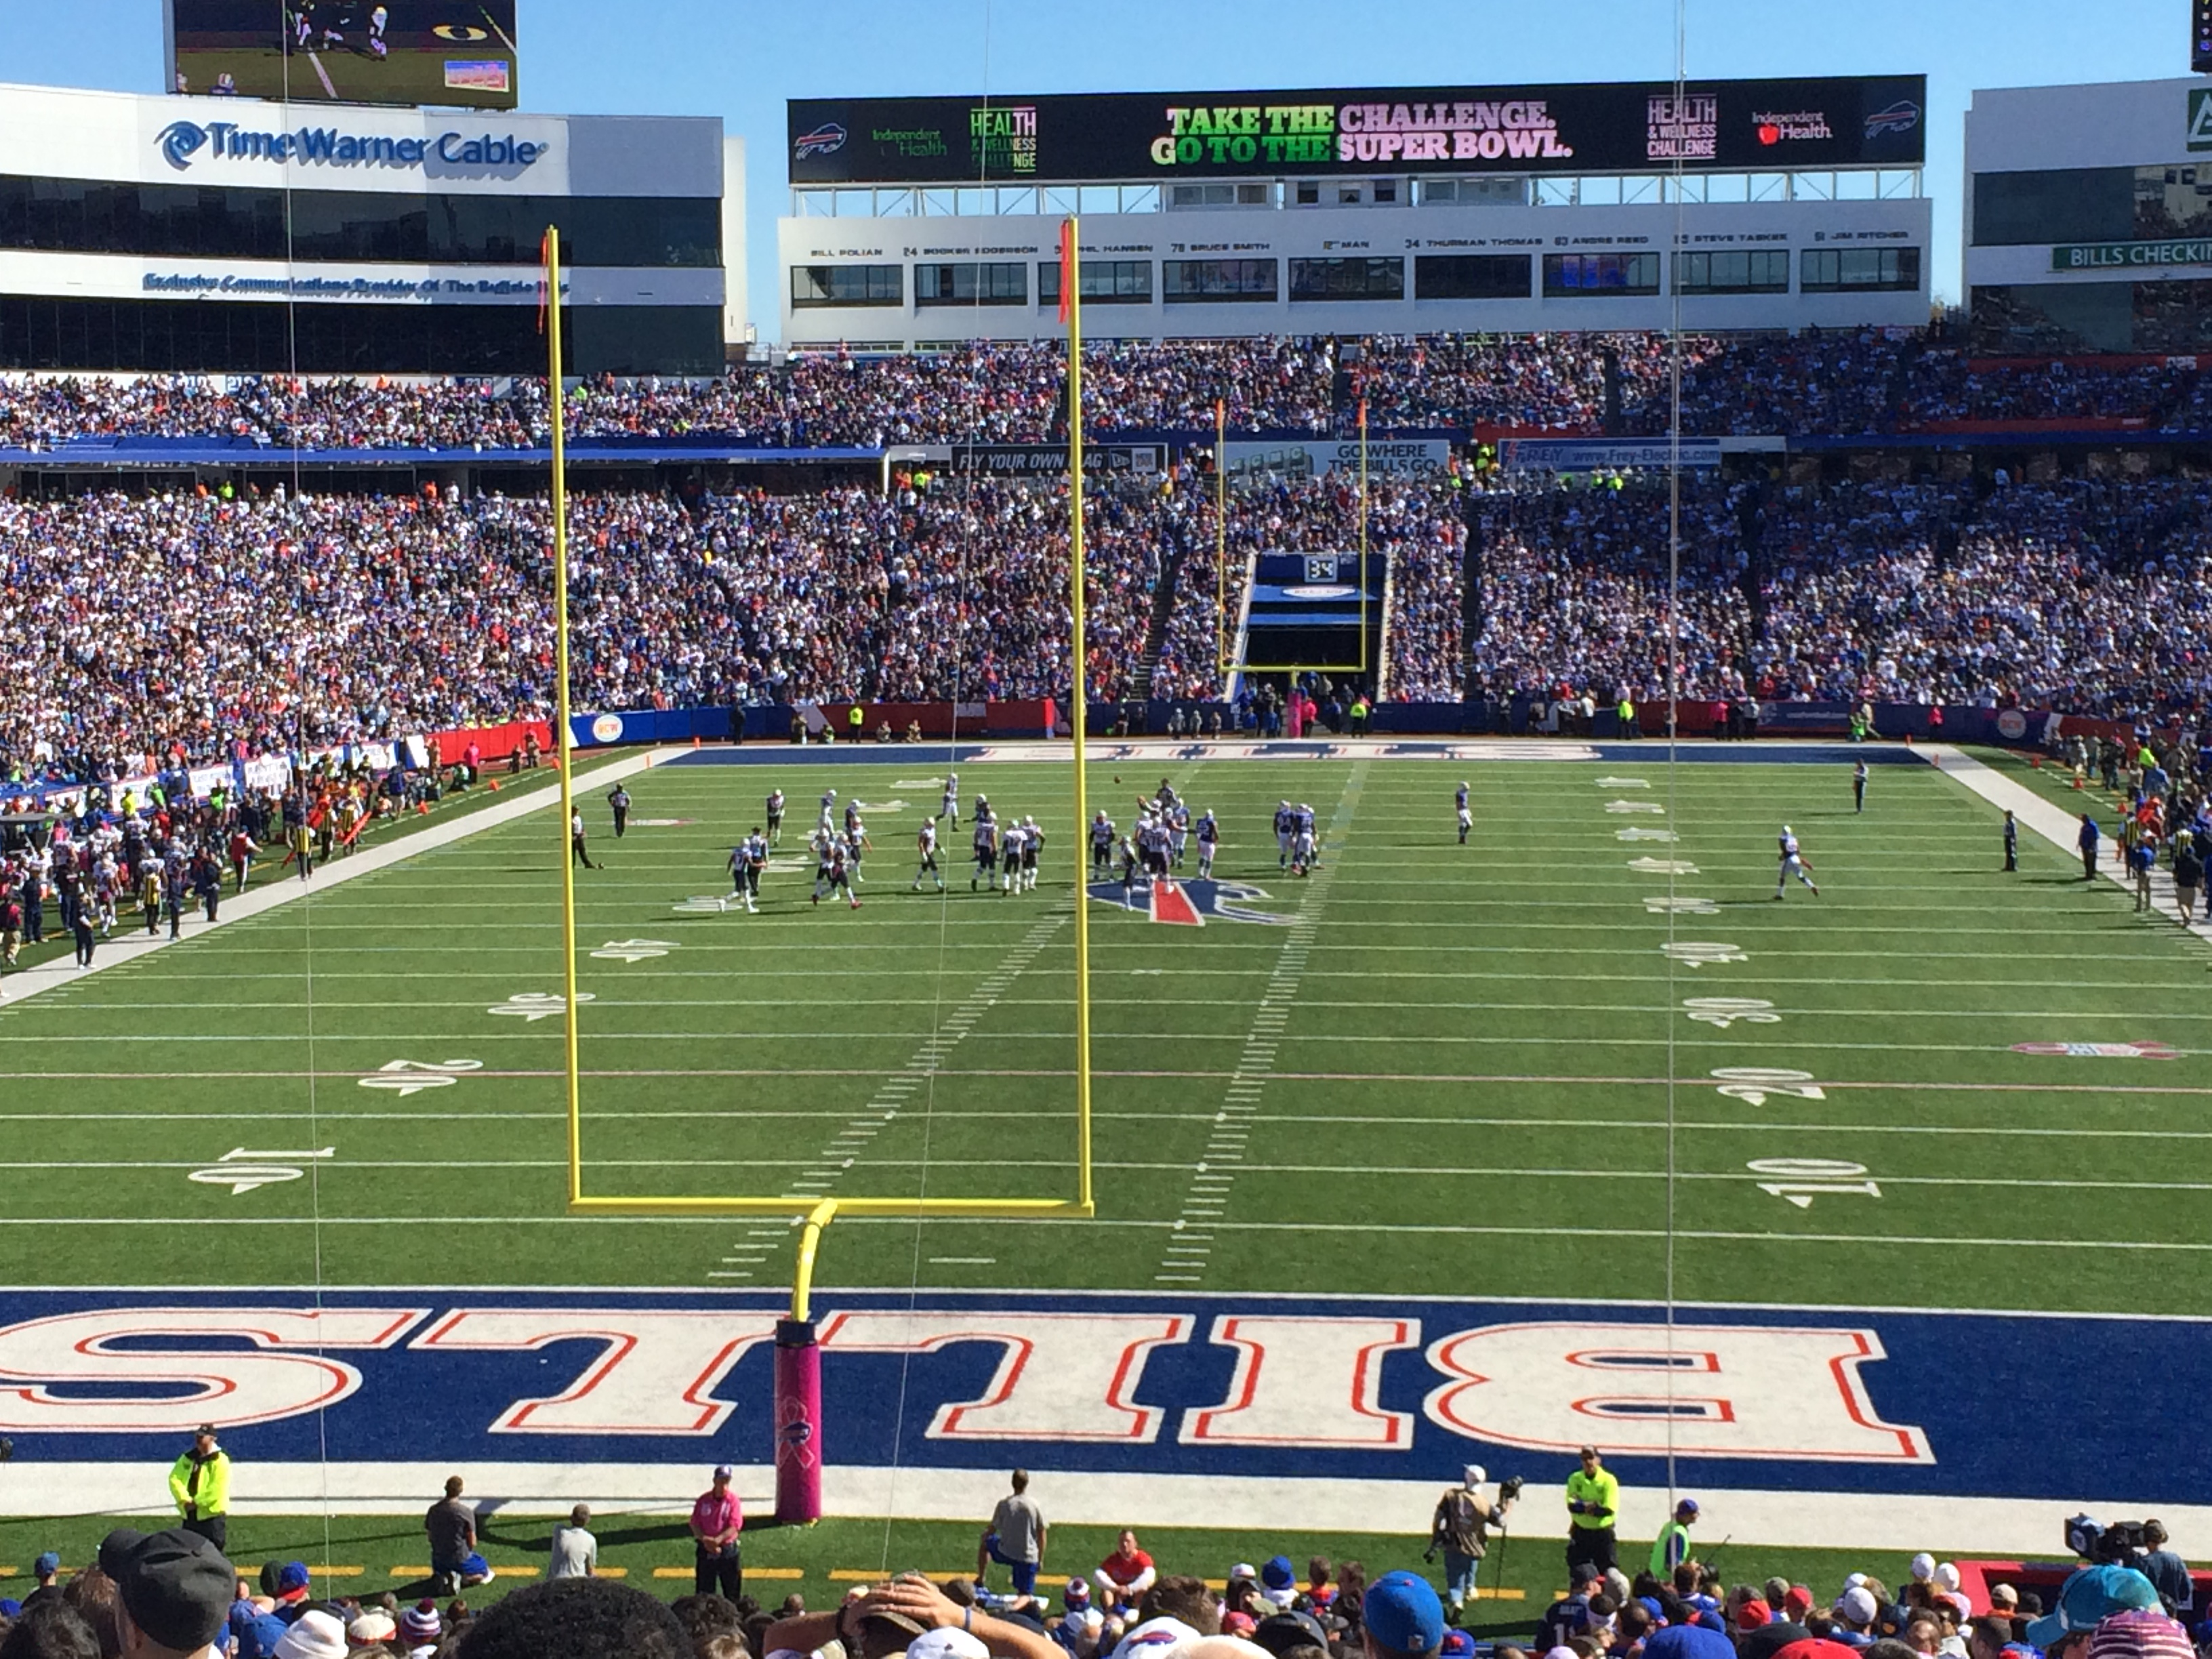 Buffalo-Billls-Game-Bills-New England-Game-Ralph-Wilson-Stadium-2